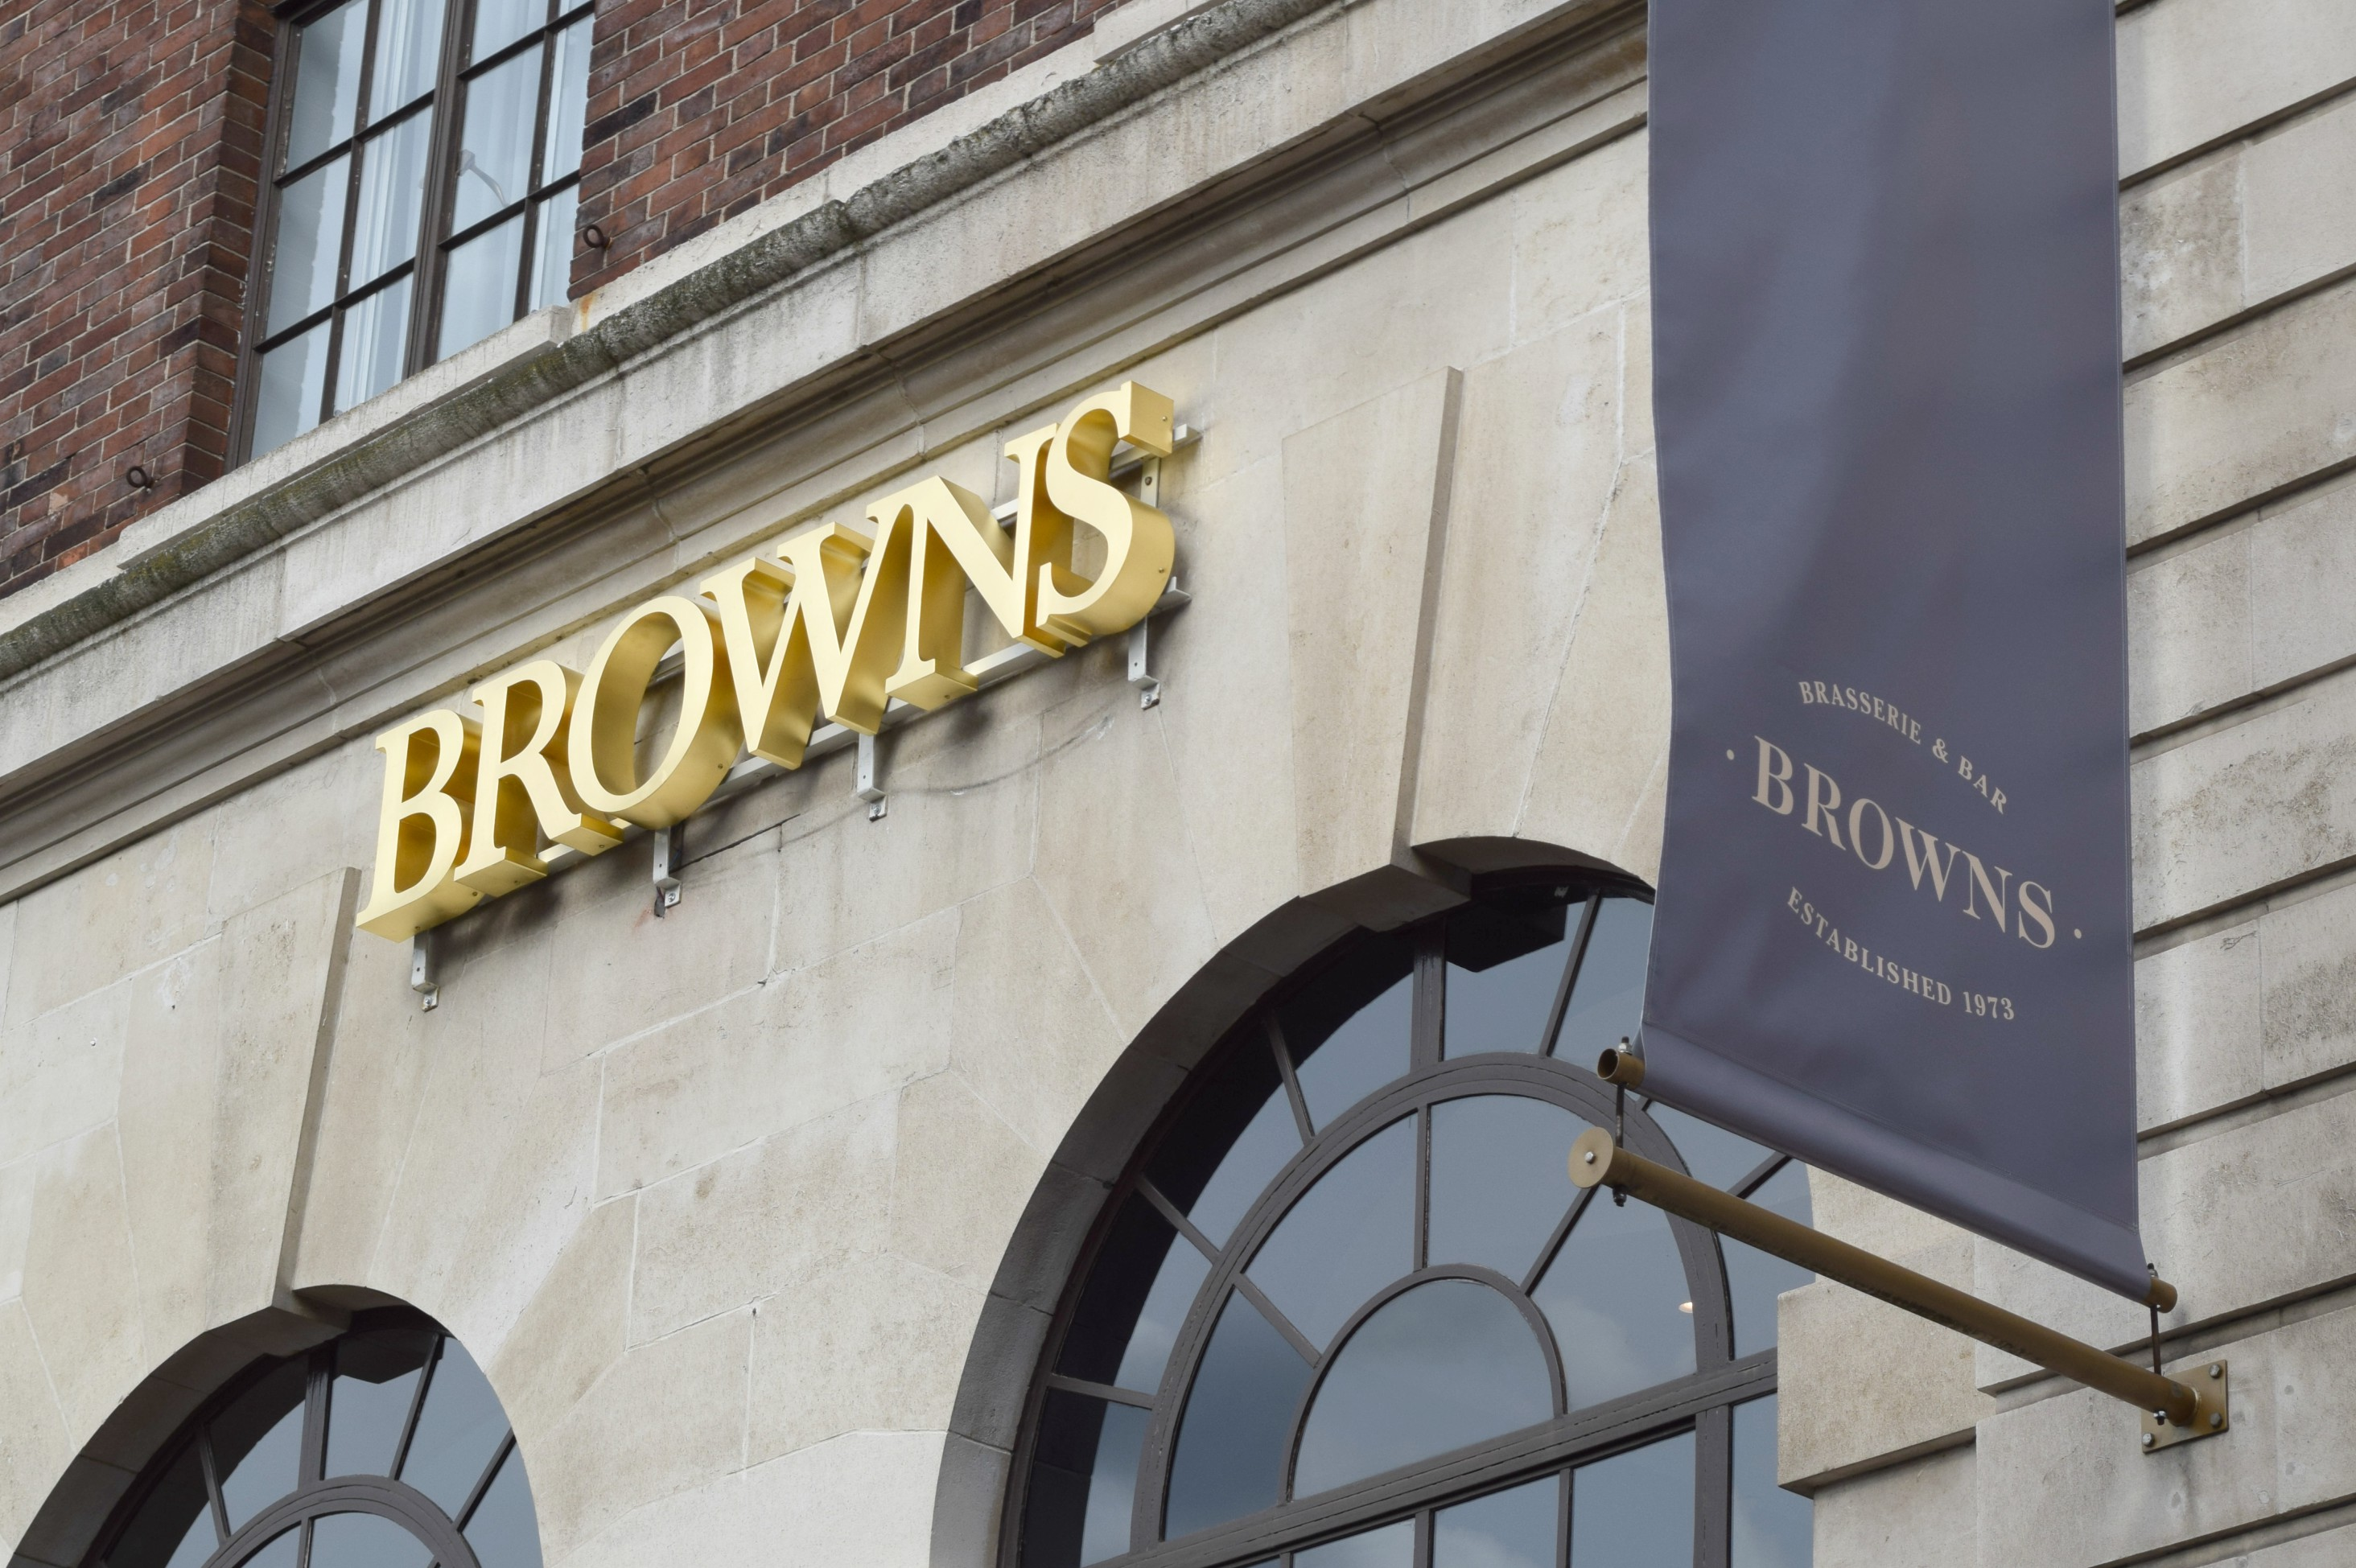 Browns Leeds sign